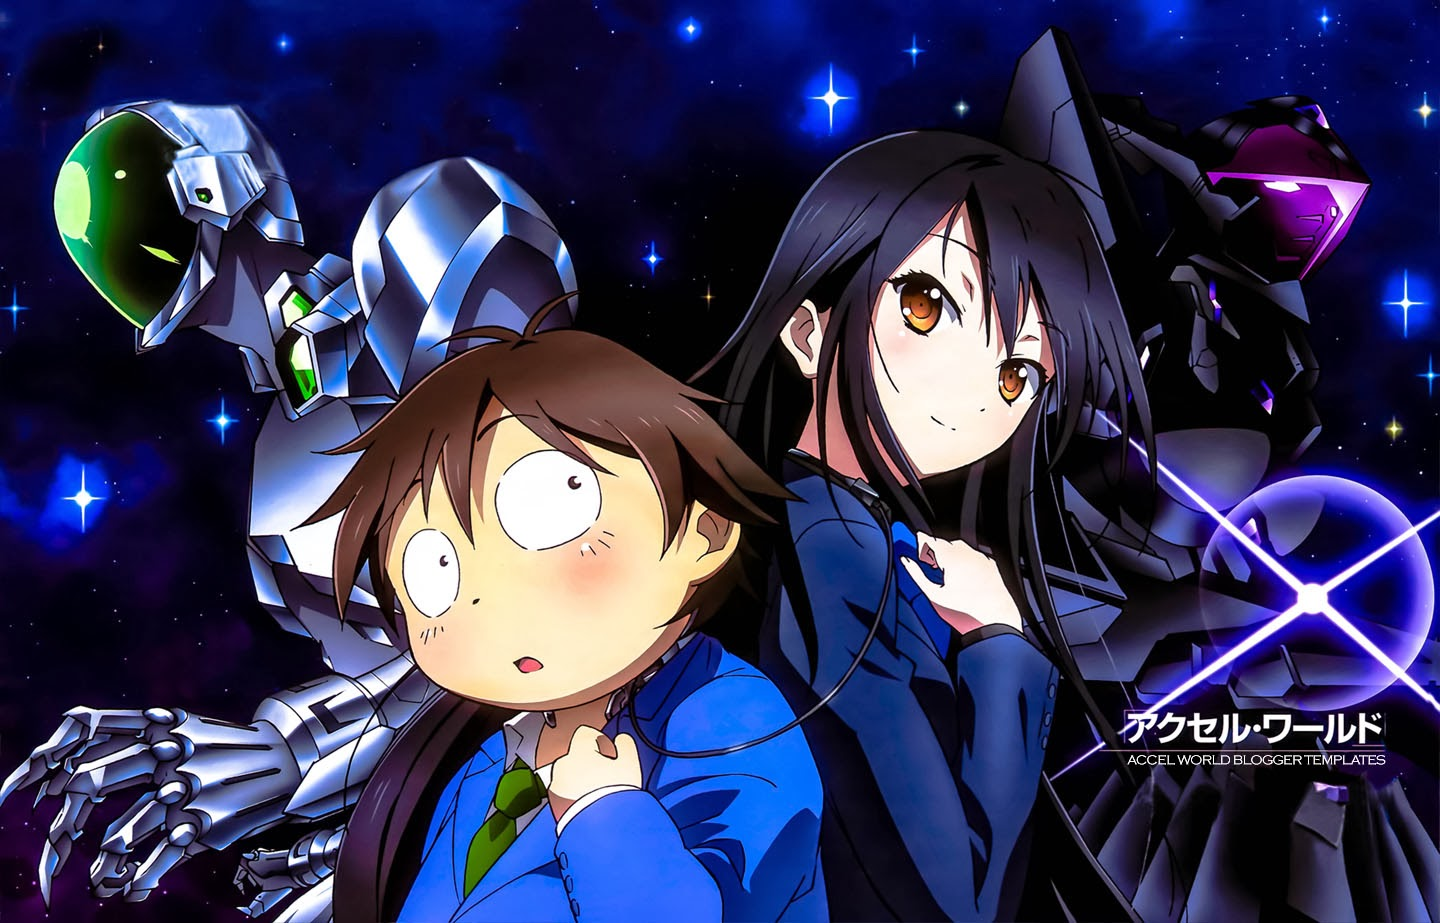 Music Song Accel World